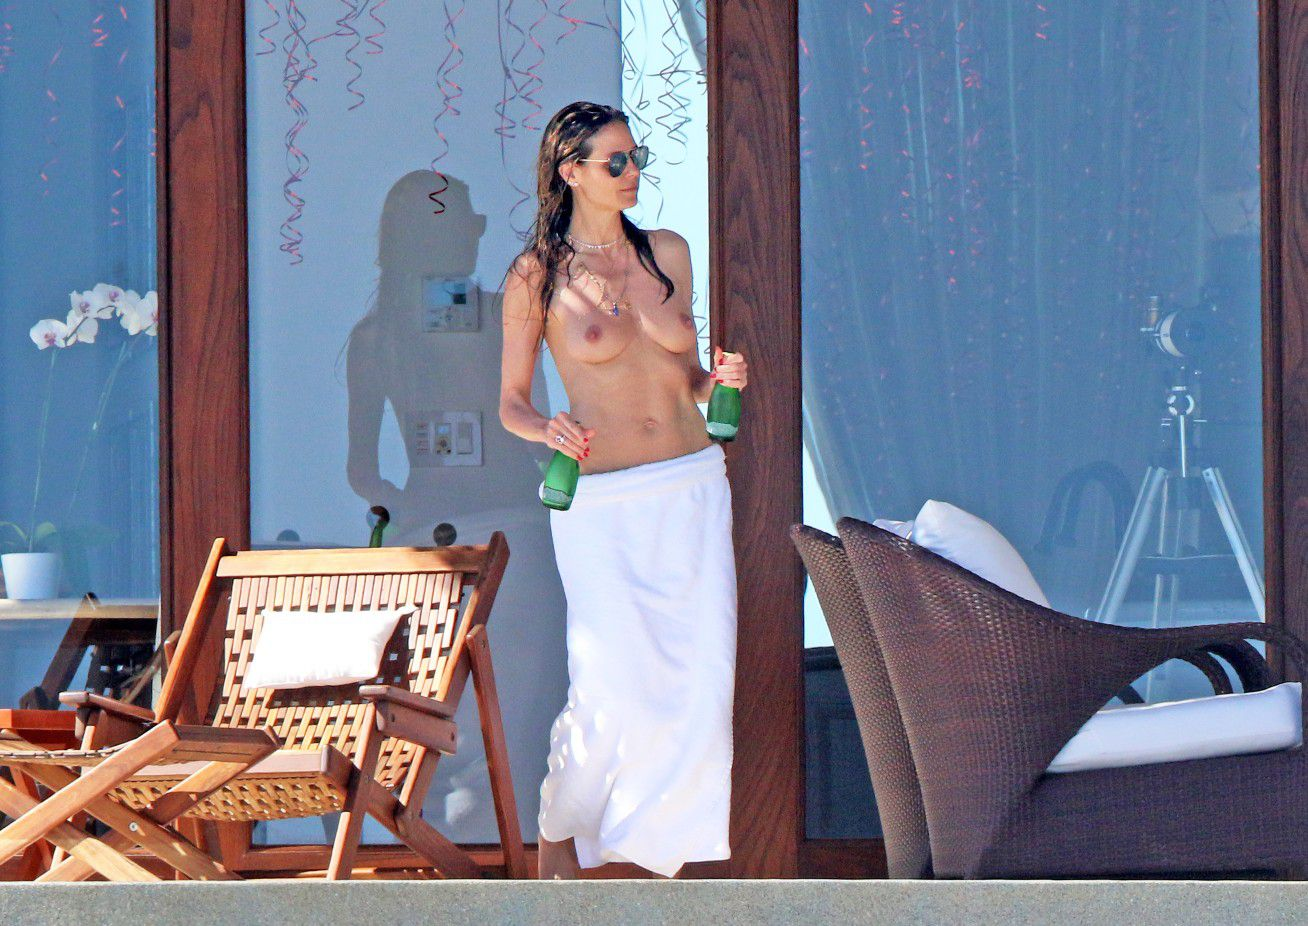 heidi-klum-topless-candids-in-cabo-san-lucas-mexico-4893